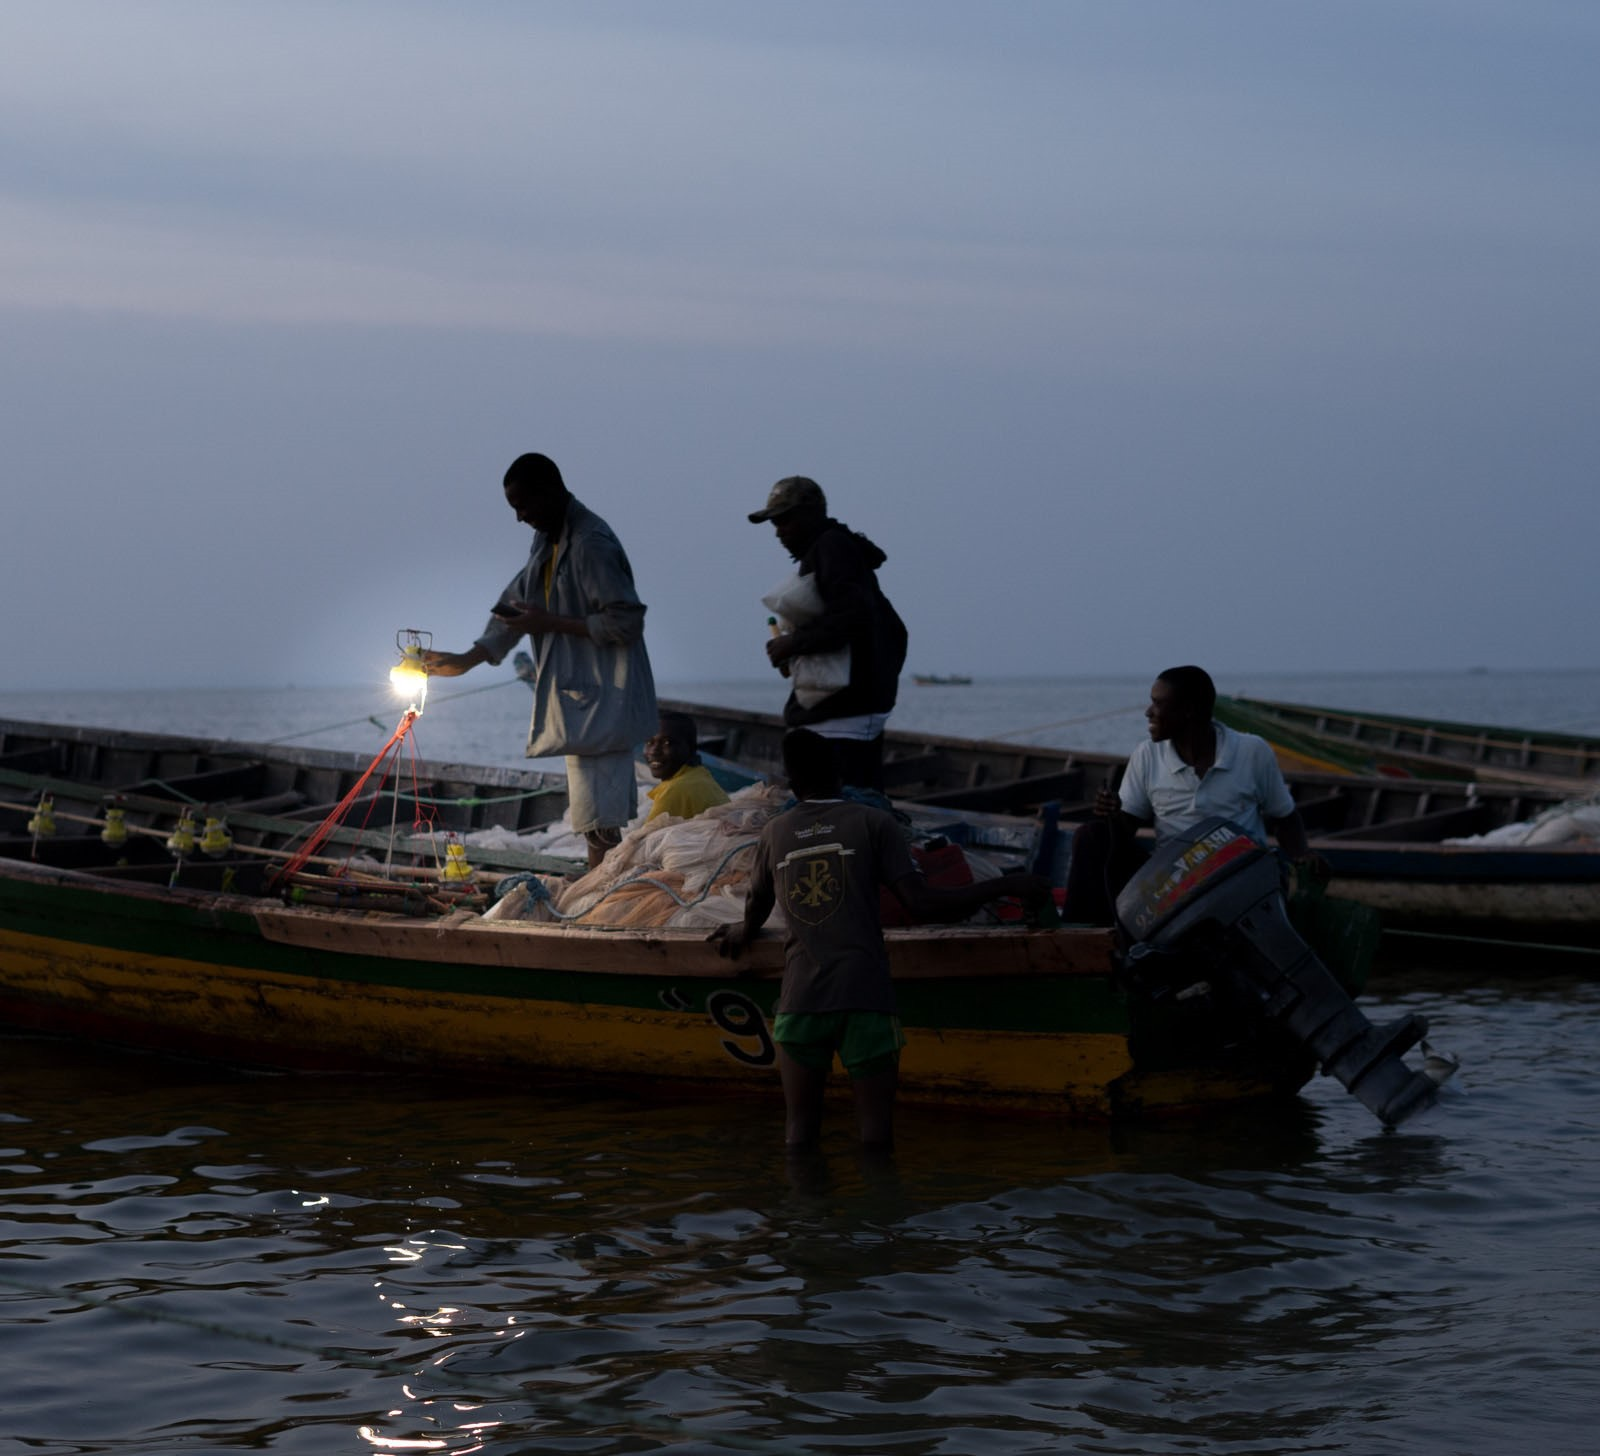 Night fishers charging solar-powered fishing lights to prepare for a night out on Lake Victoria.